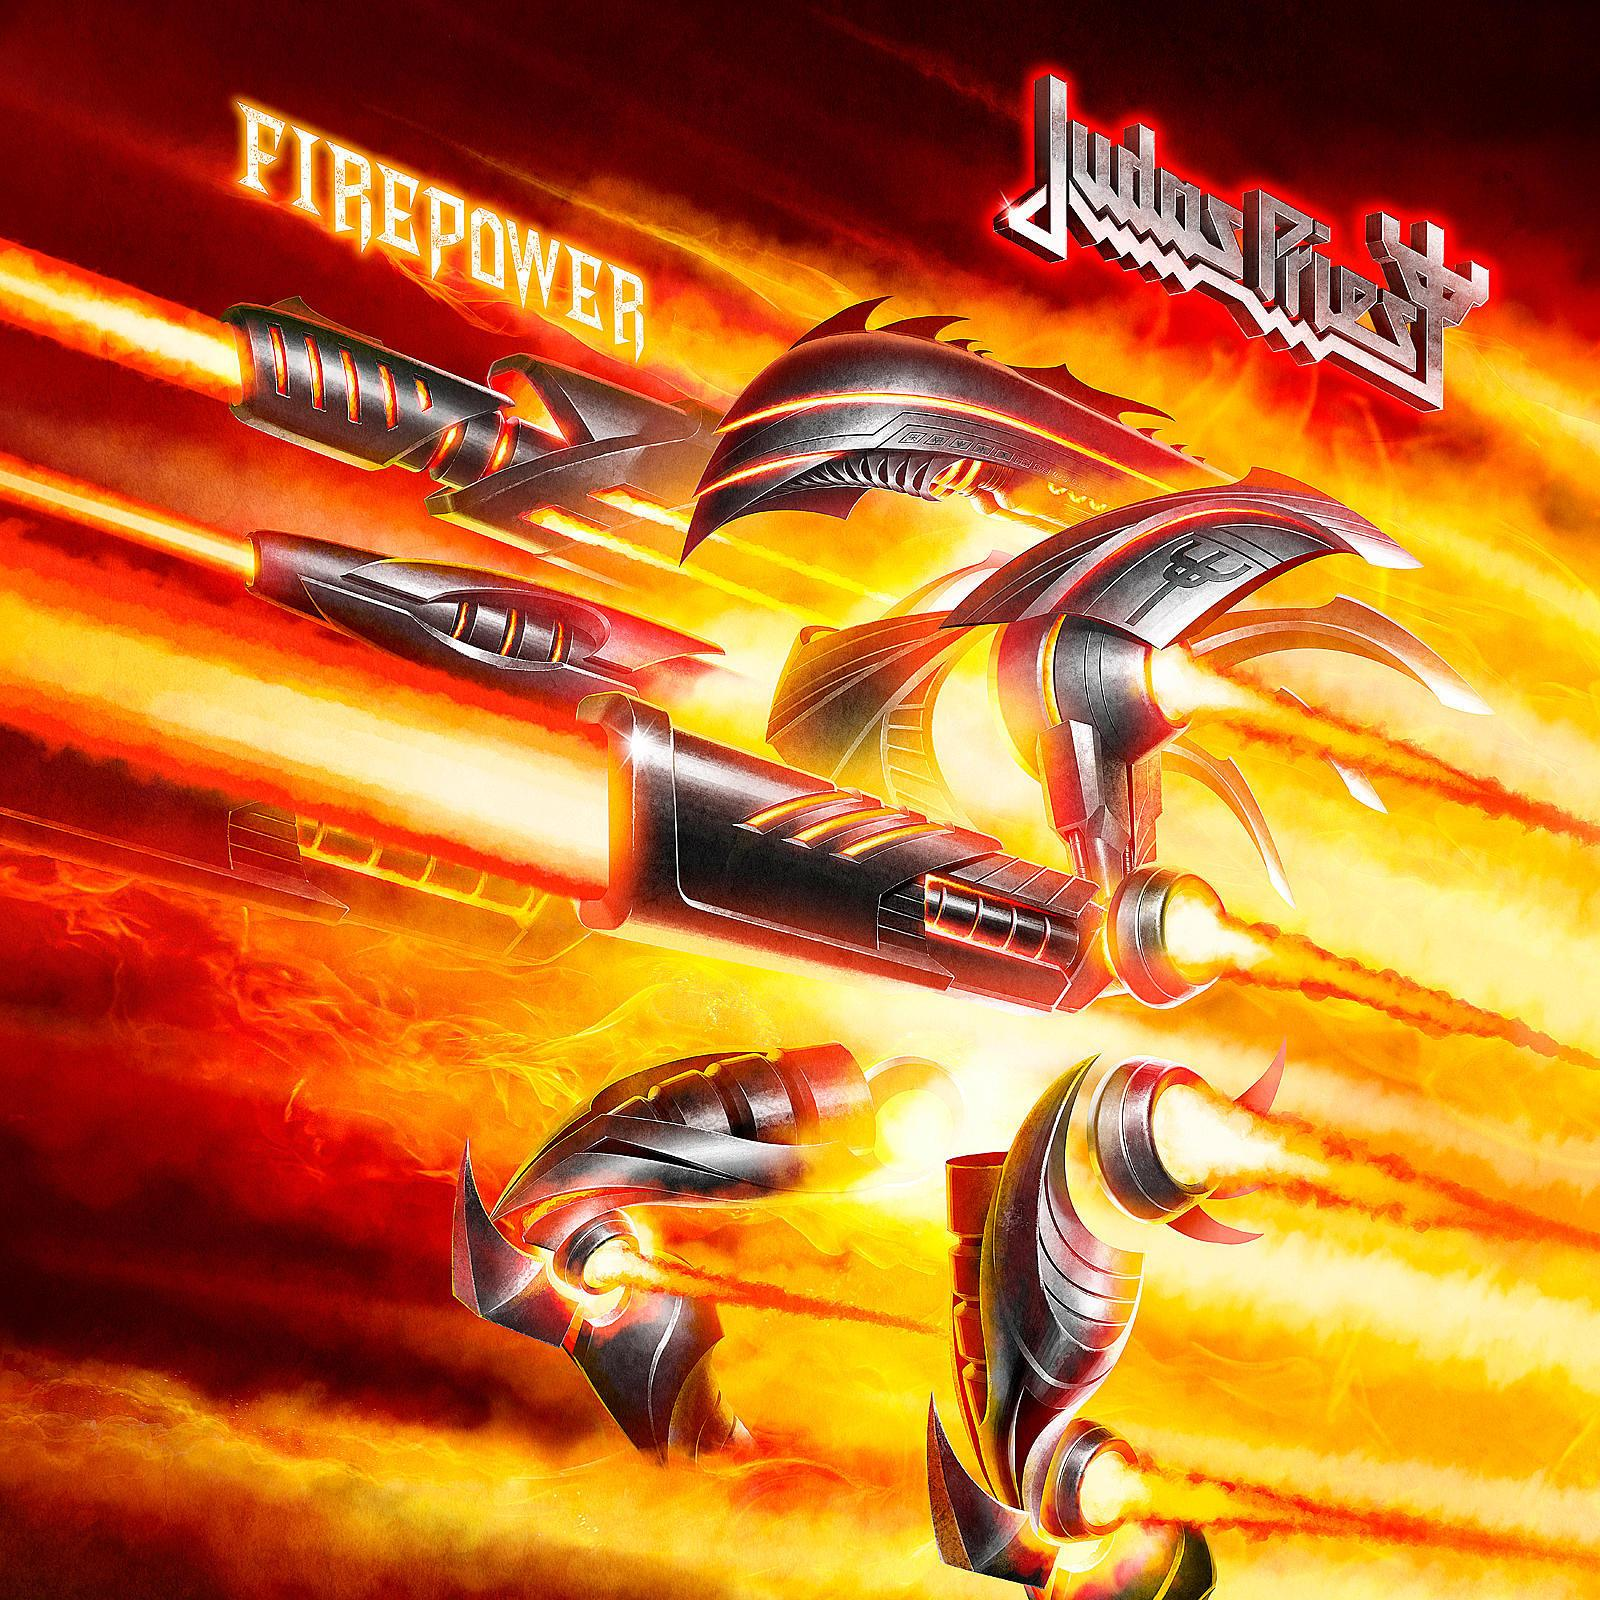 Judas priest discography (1974 2016) ( heavy metal) download.